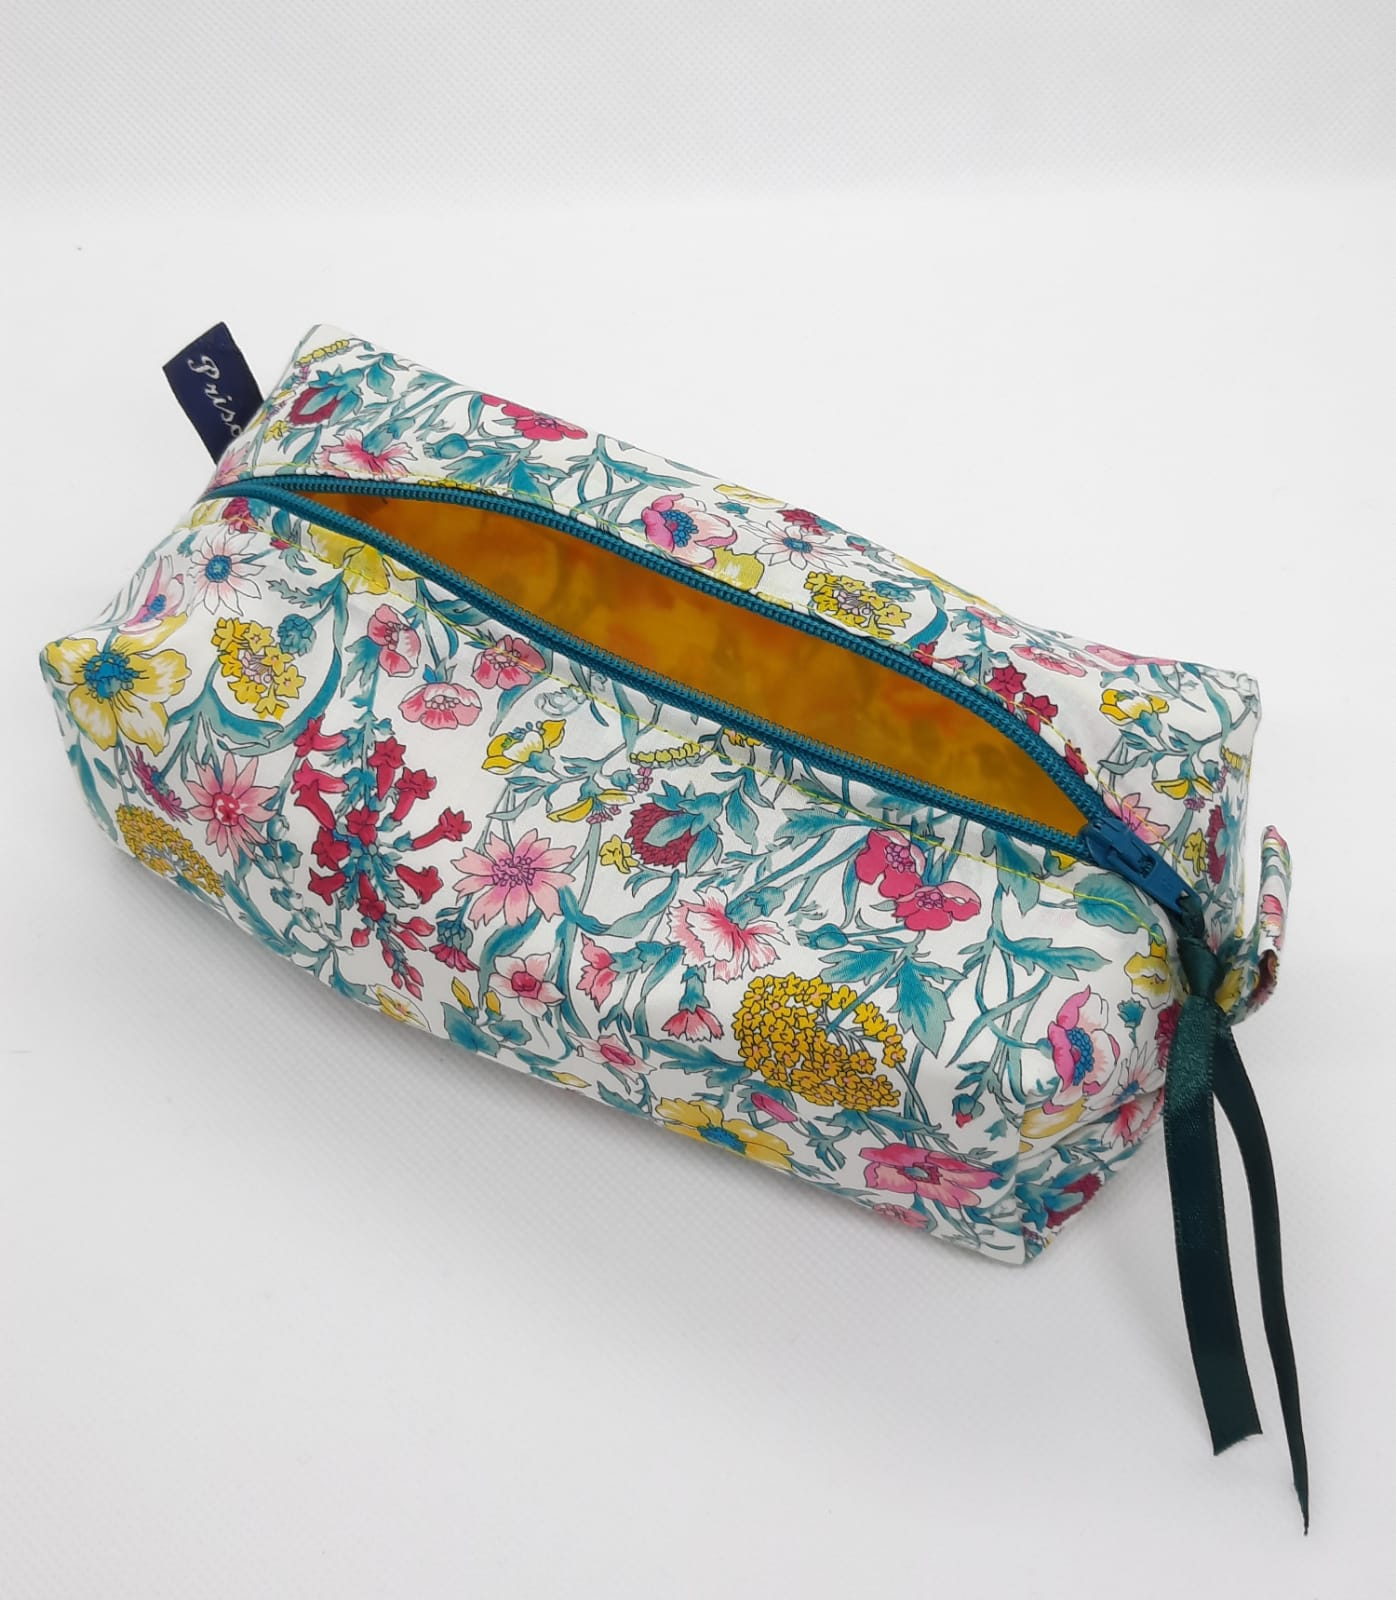 Make up bag; Liberty material on the outside; yellow spinnaker sailcloth inside th